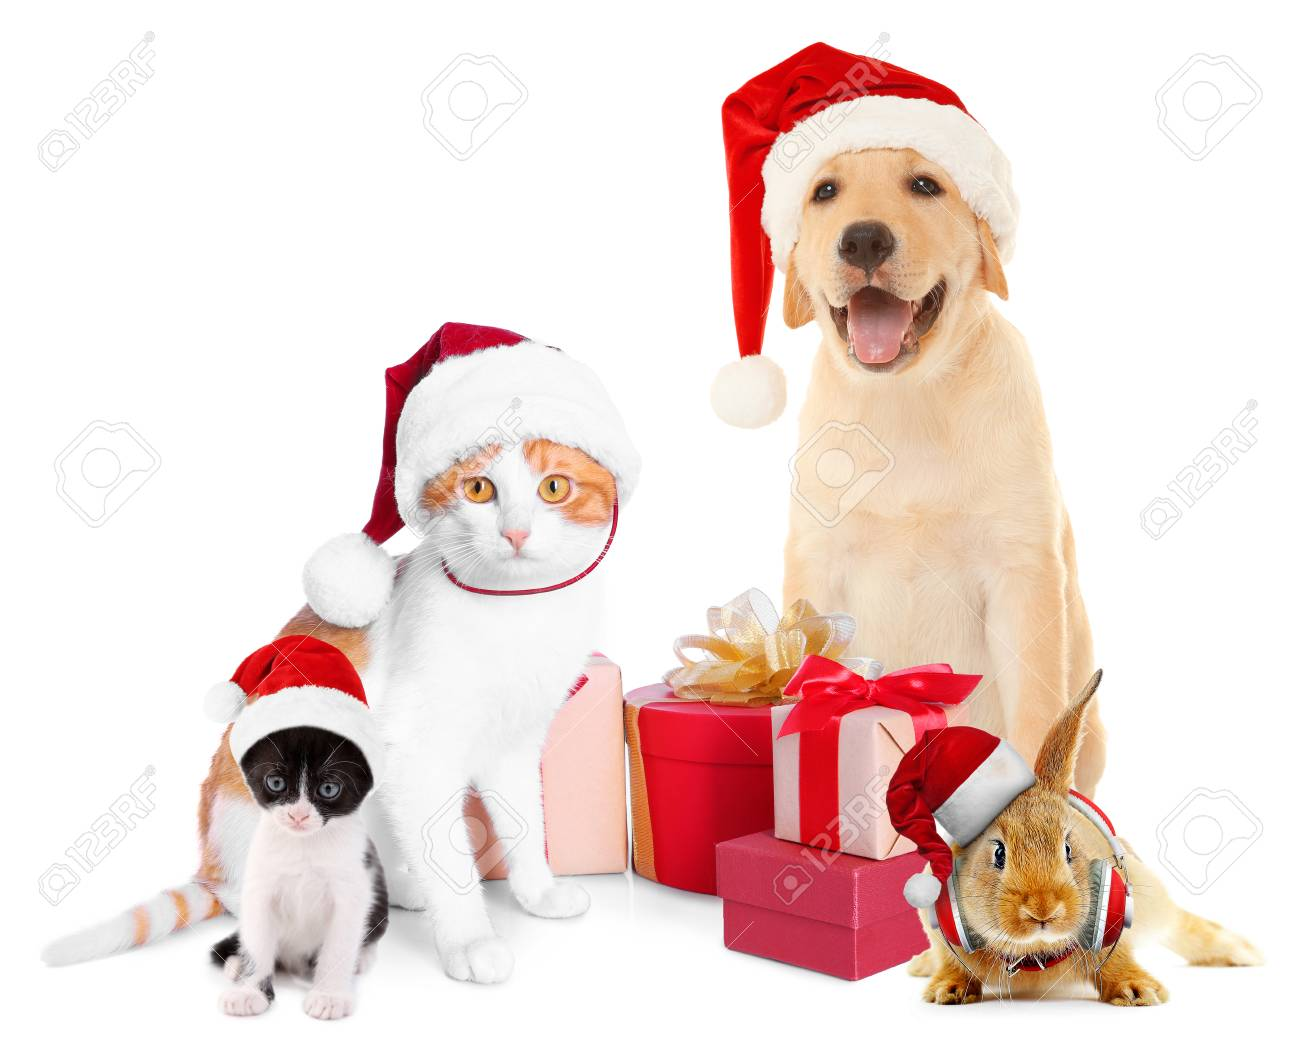 Funny pets in Santa hats with Christmas gifts on white background Stock Photo - 92122157  sc 1 st  123RF.com & Funny Pets In Santa Hats With Christmas Gifts On White Background ...